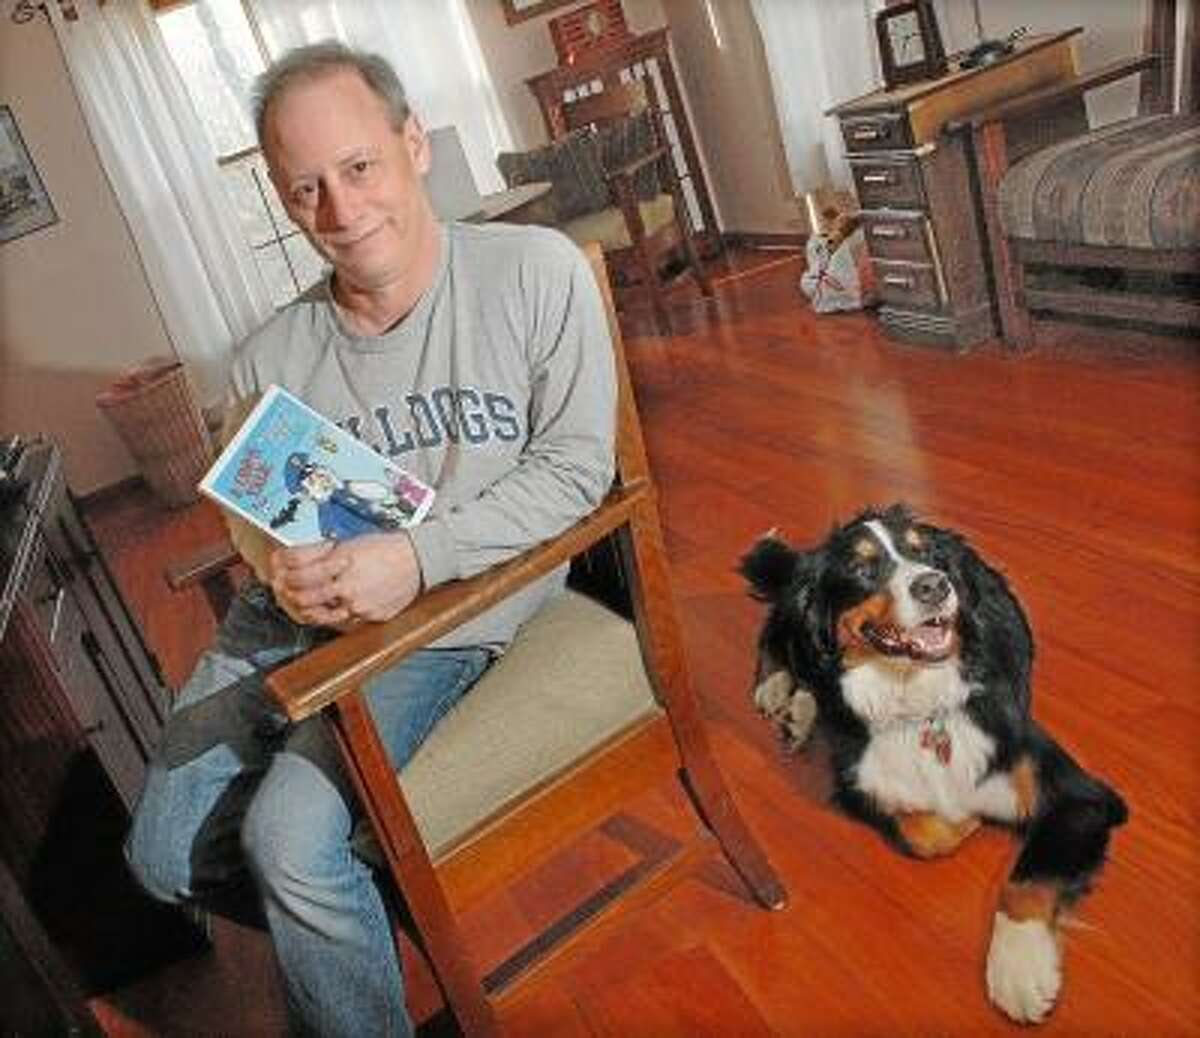 Catherine Avalone/The Middletown Press Retired Middletown Police Sergeant Craig M. Elkin in his Haddam home with his dog Nikita at his side. Elkin is the author of